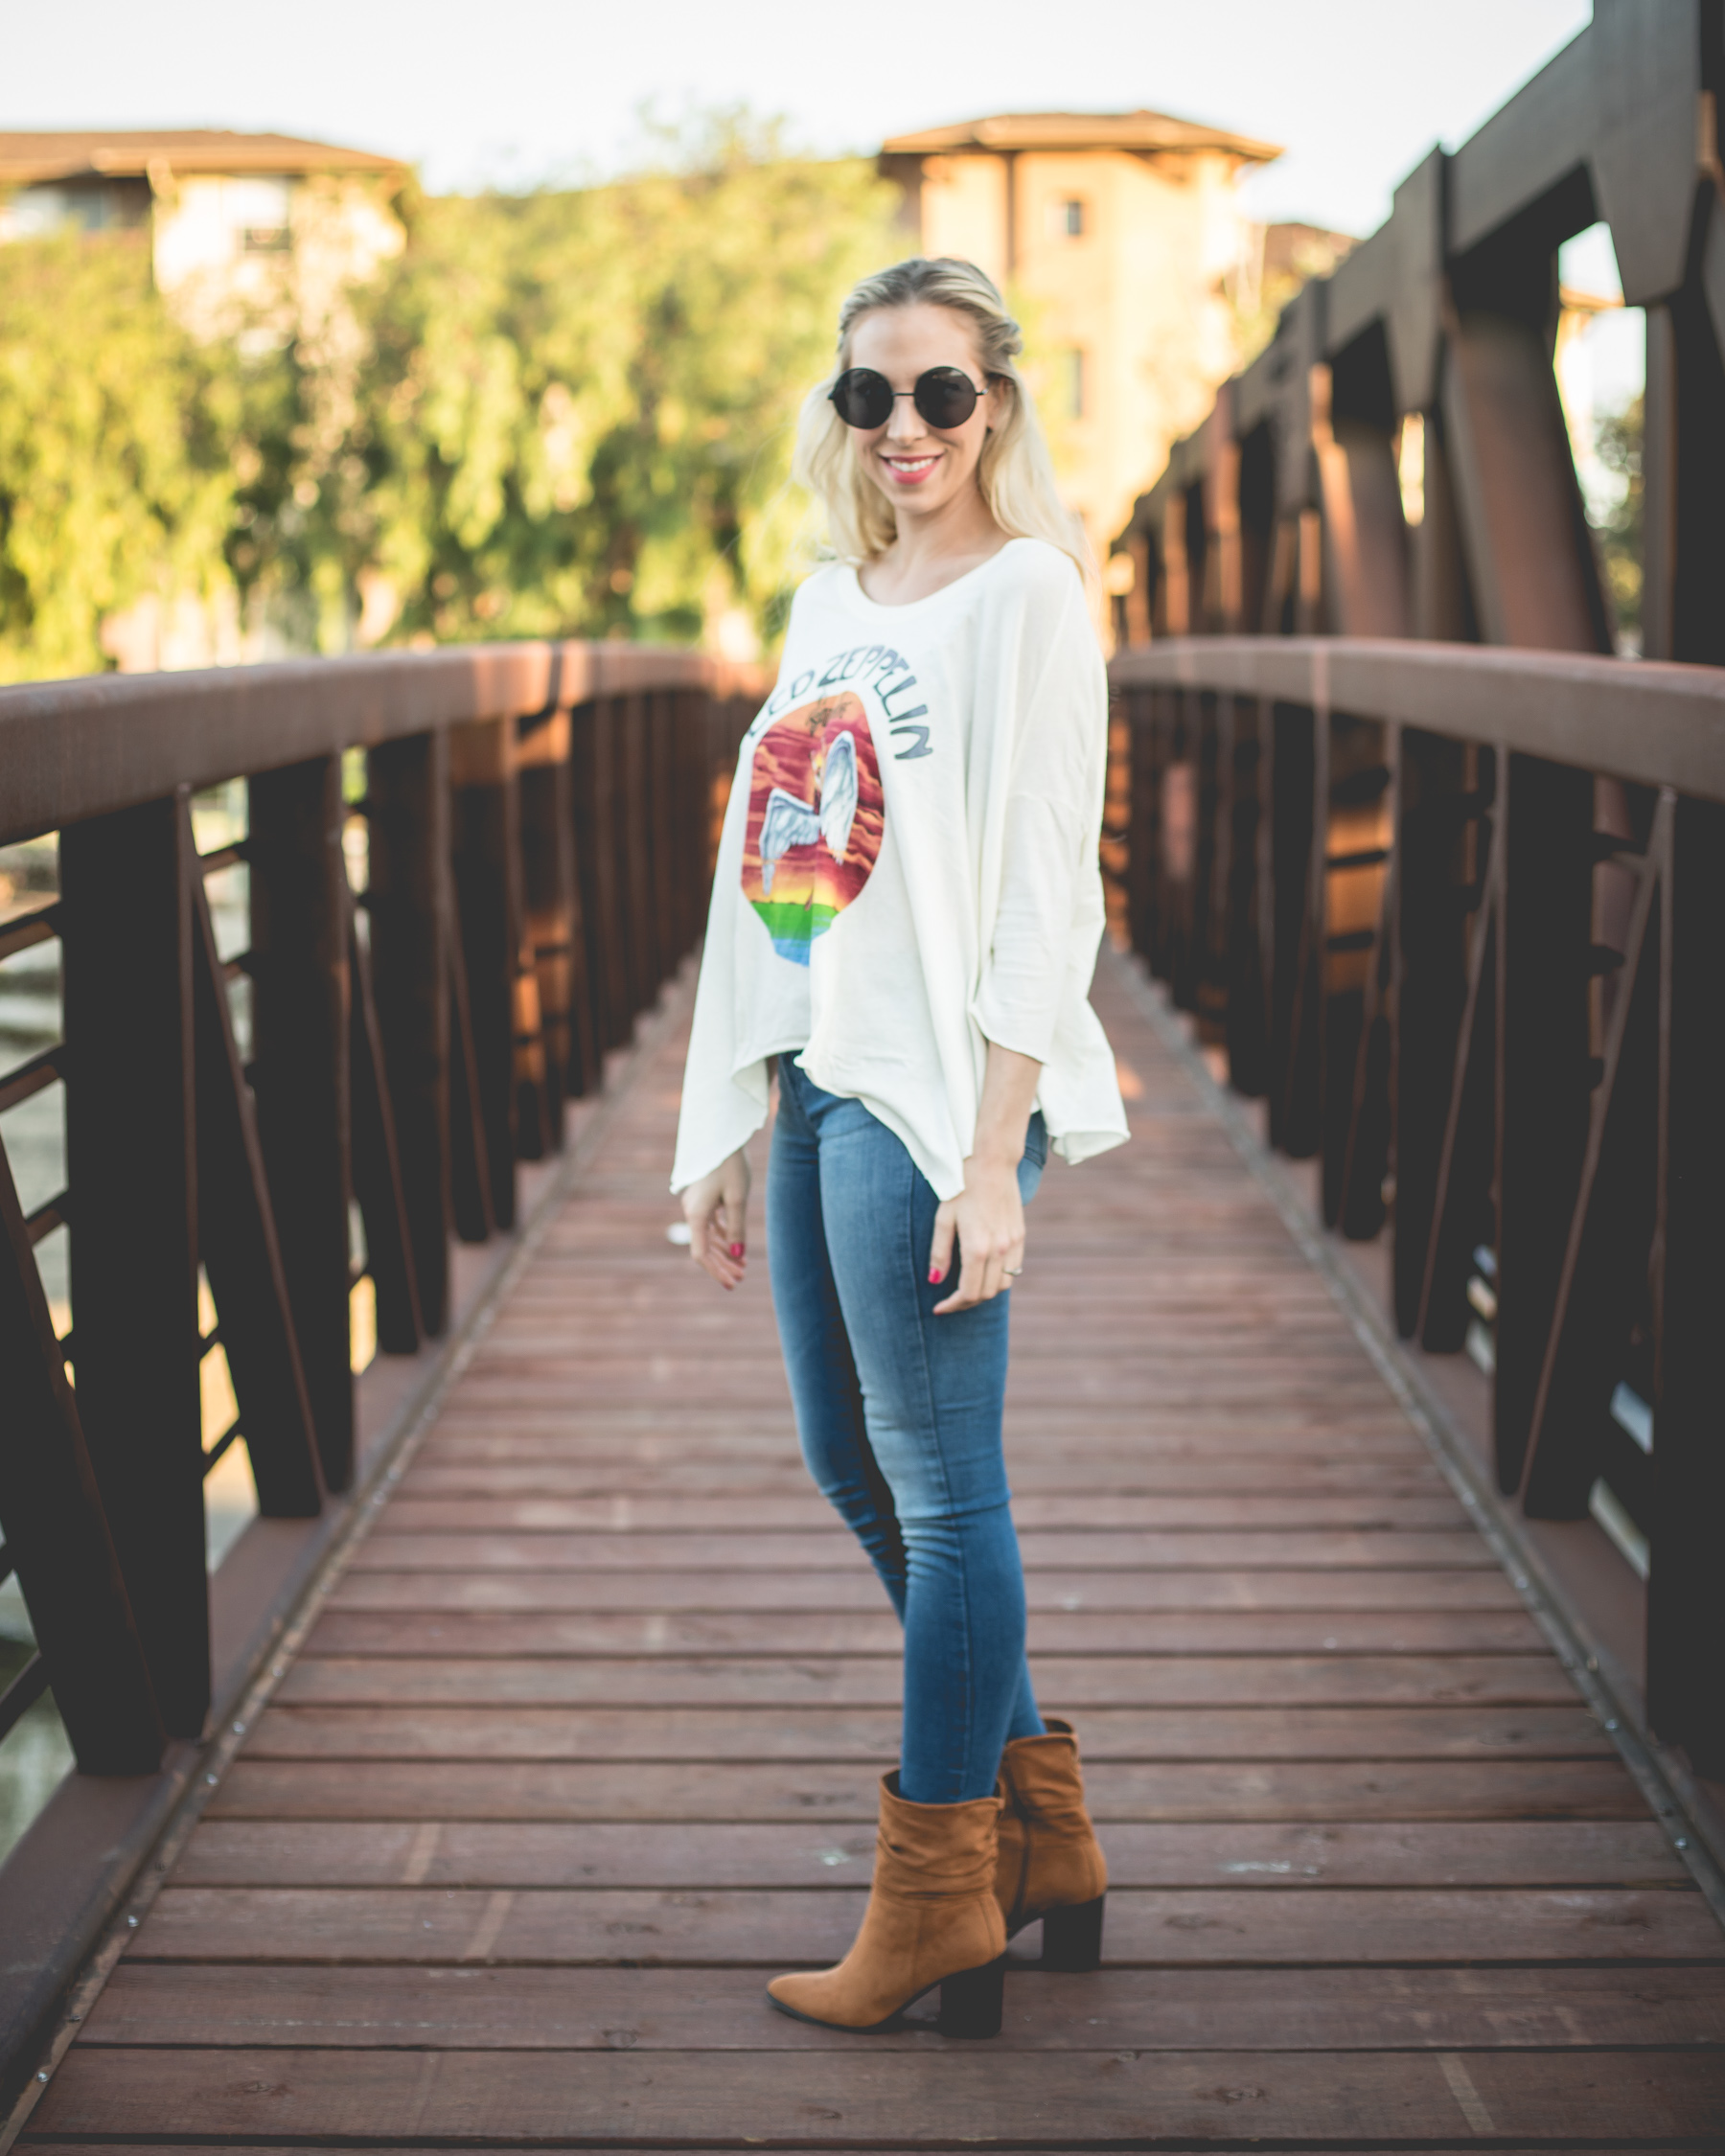 brandi-matthews-rock-rouge-hippie-shirt-1